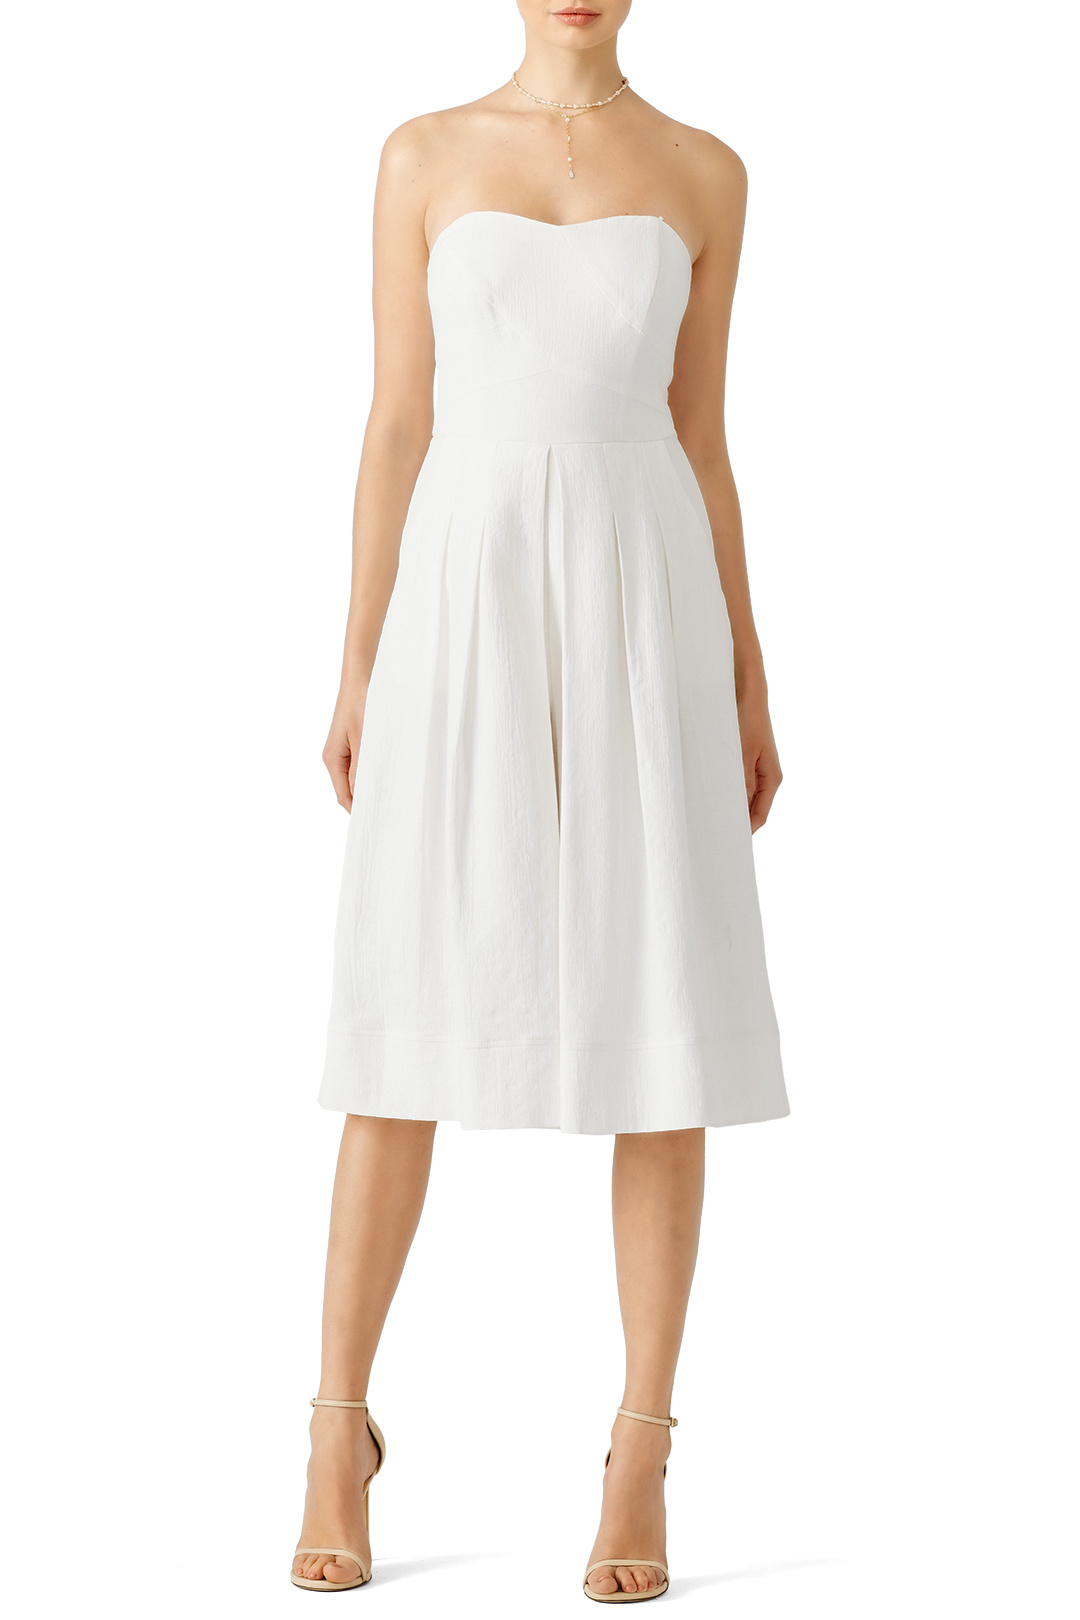 Greylin White Sweetheart Cropped Jumpsuit